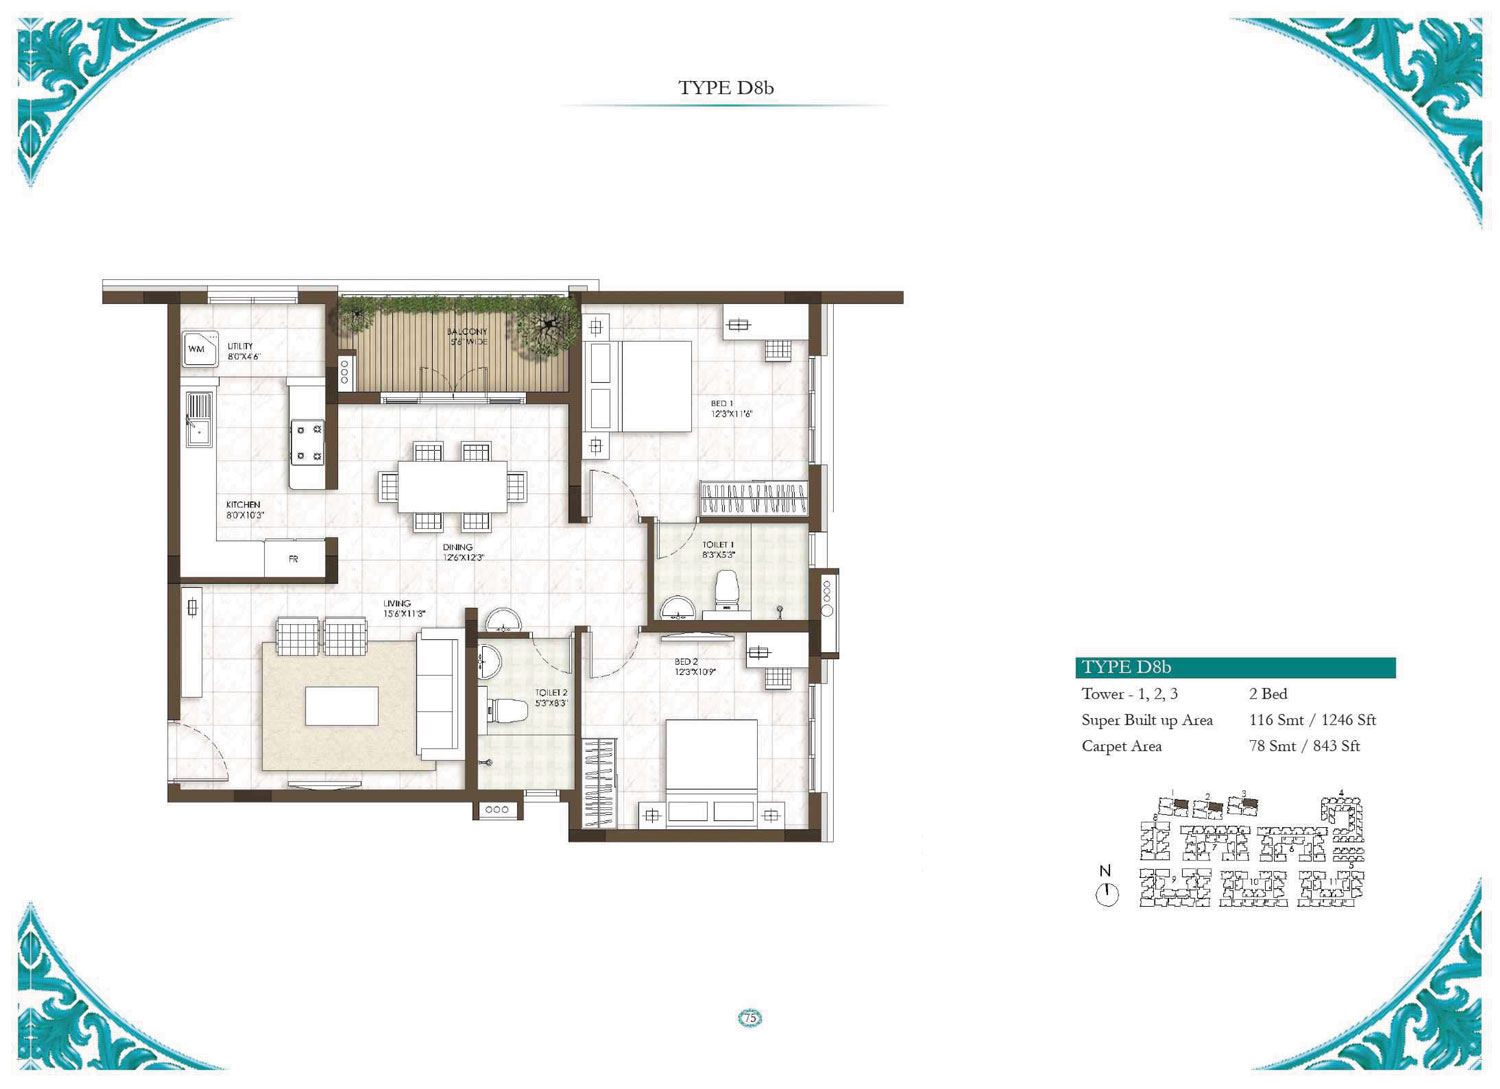 Type D8B - 2 Bed - 1246 Sq Ft